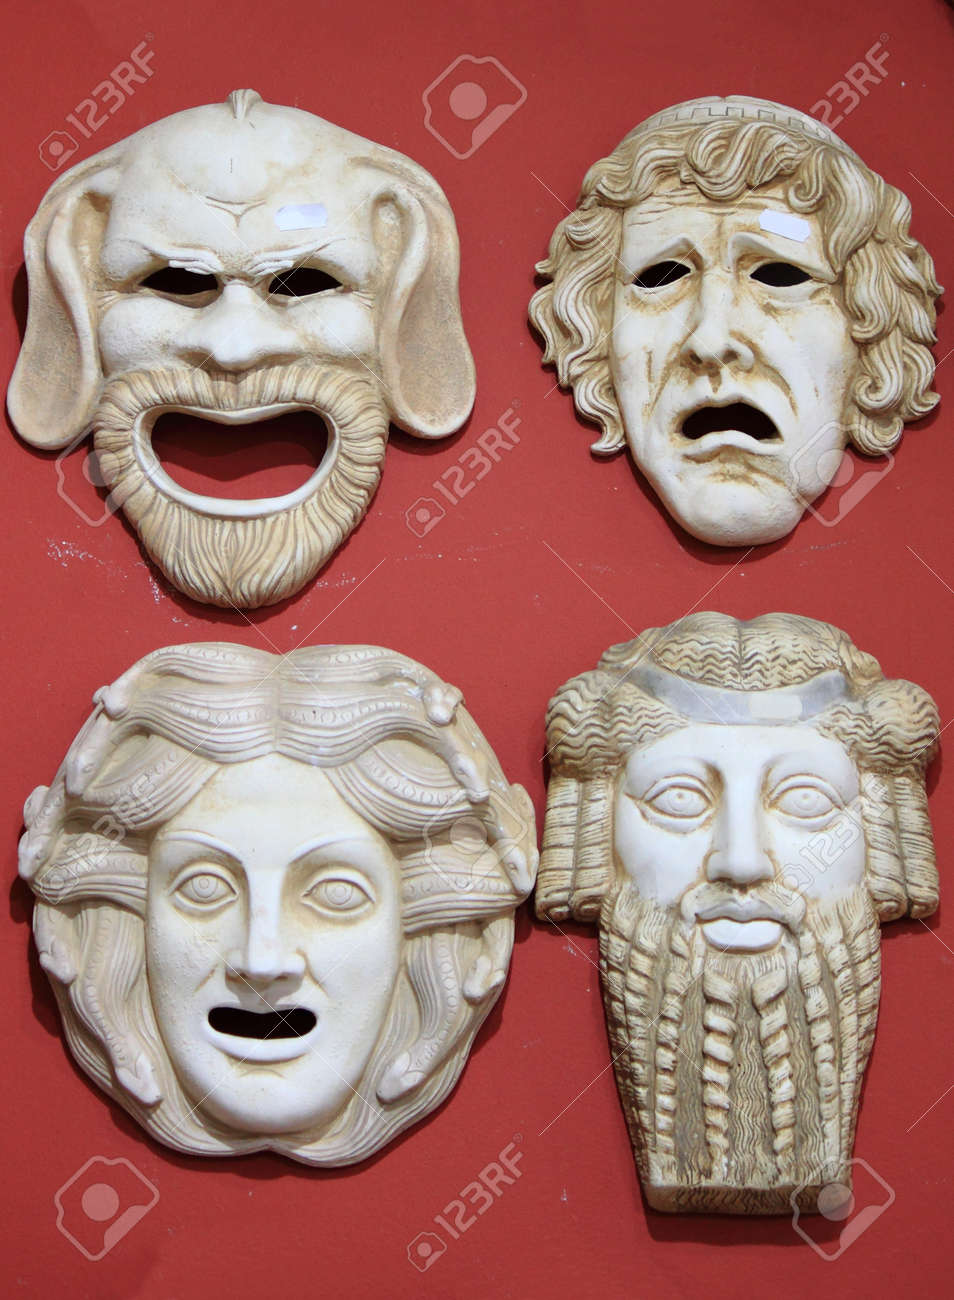 What was the role of masks in ancient greek theatre?